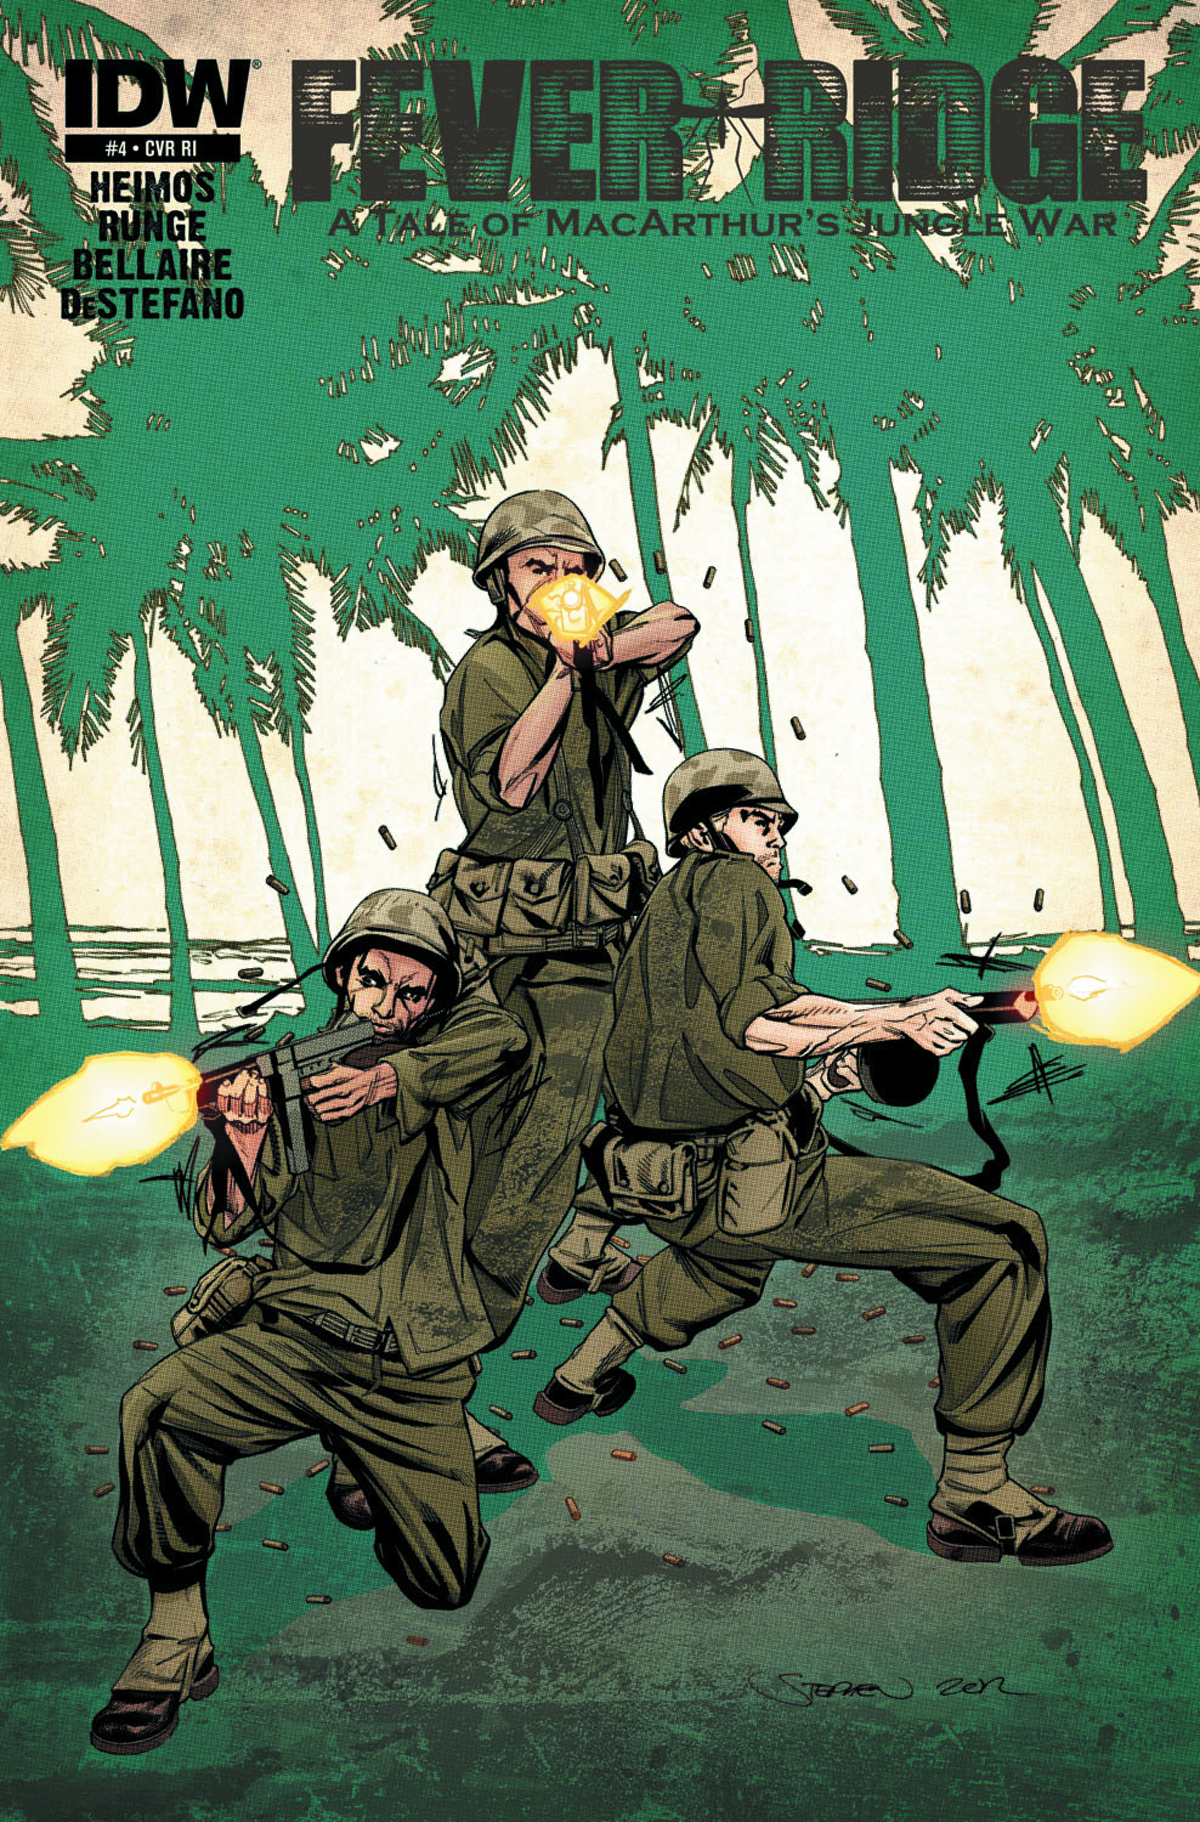 FEVER RIDGE MACARTHUR JUNGLE WAR #4